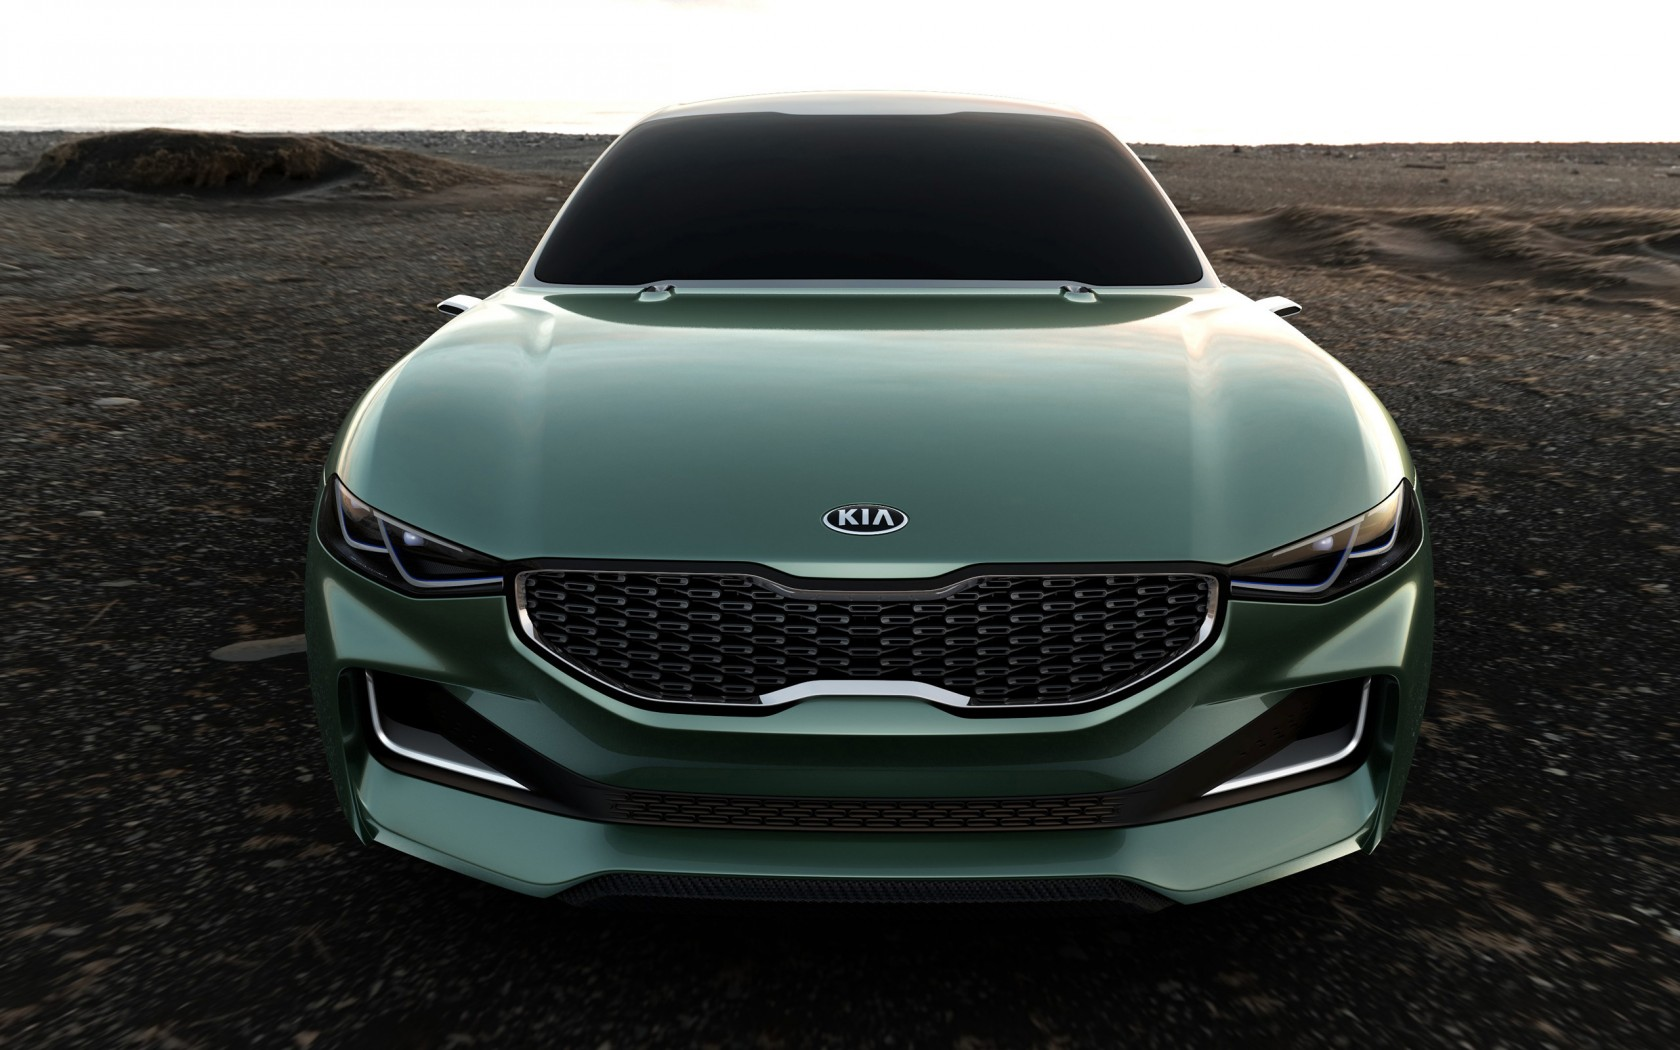 Toyota Land Rover >> 2015 Kia Novo Concept Wallpaper | HD Car Wallpapers | ID #5269